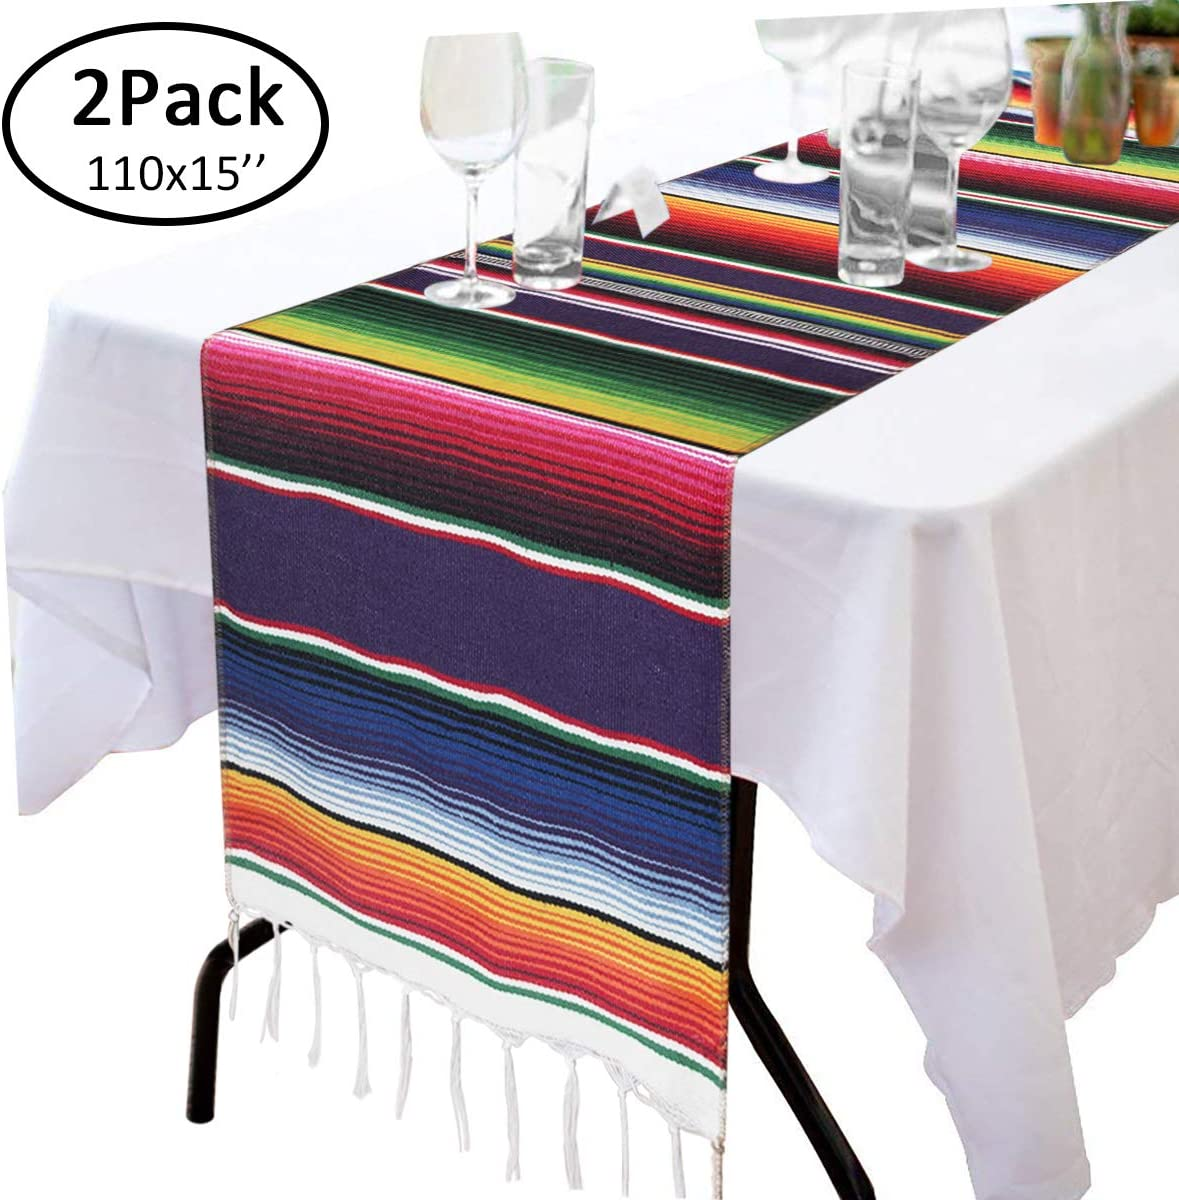 """110"""" x 15"""" Mexican Blanket Table Runner for Cinco de Mayo Decorations - Hand Woven Table Cloth Fiesta Party Supplies - Fringe Cotton Mexican Serape Table Runner for Mexican Party Wedding Decorations"""